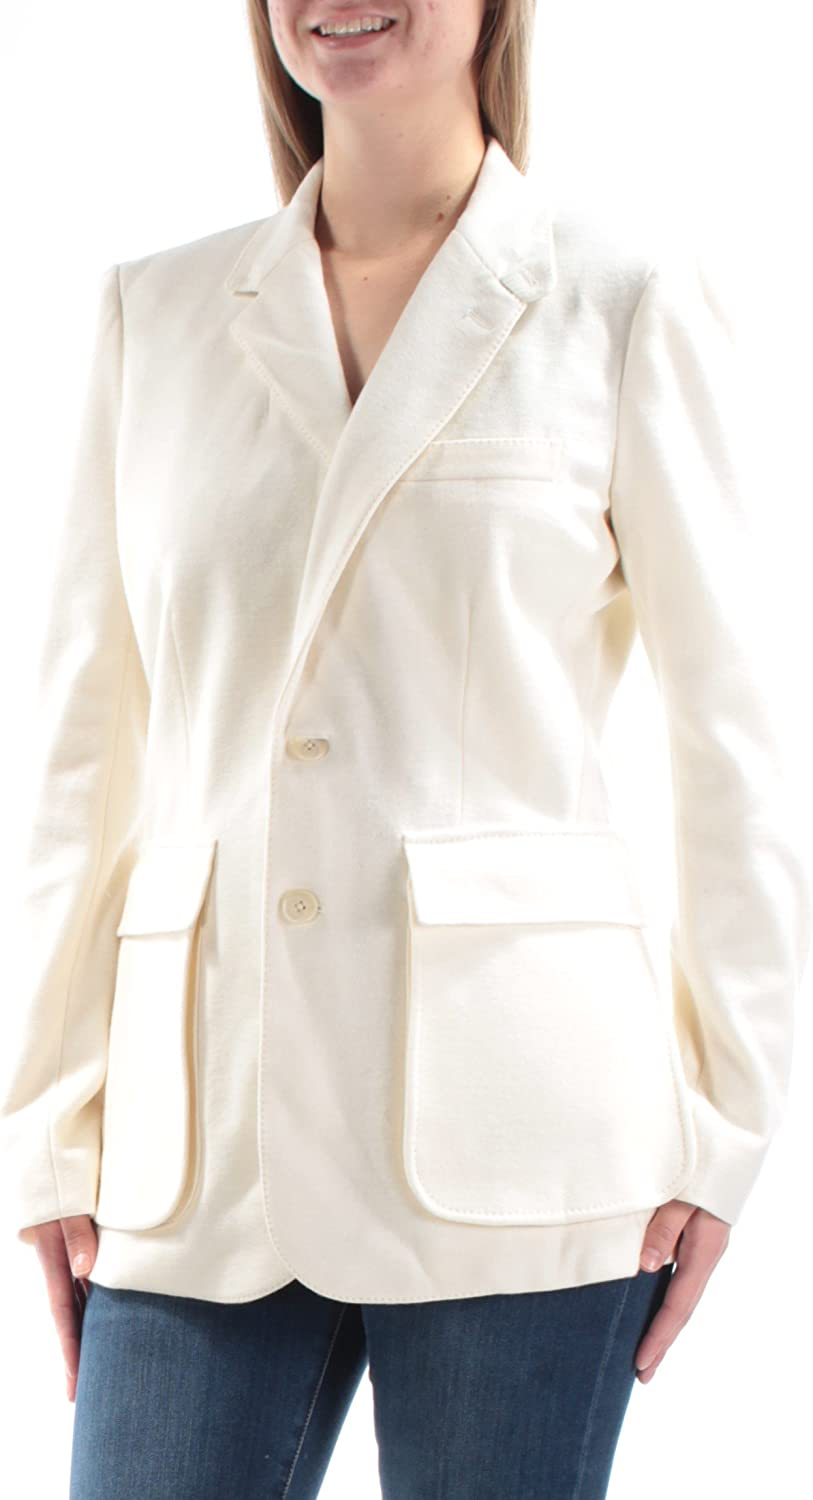 RALPH LAUREN  398 Womens New 1016 Ivory Pocketed Peacoat Casual Coat 10 B+B